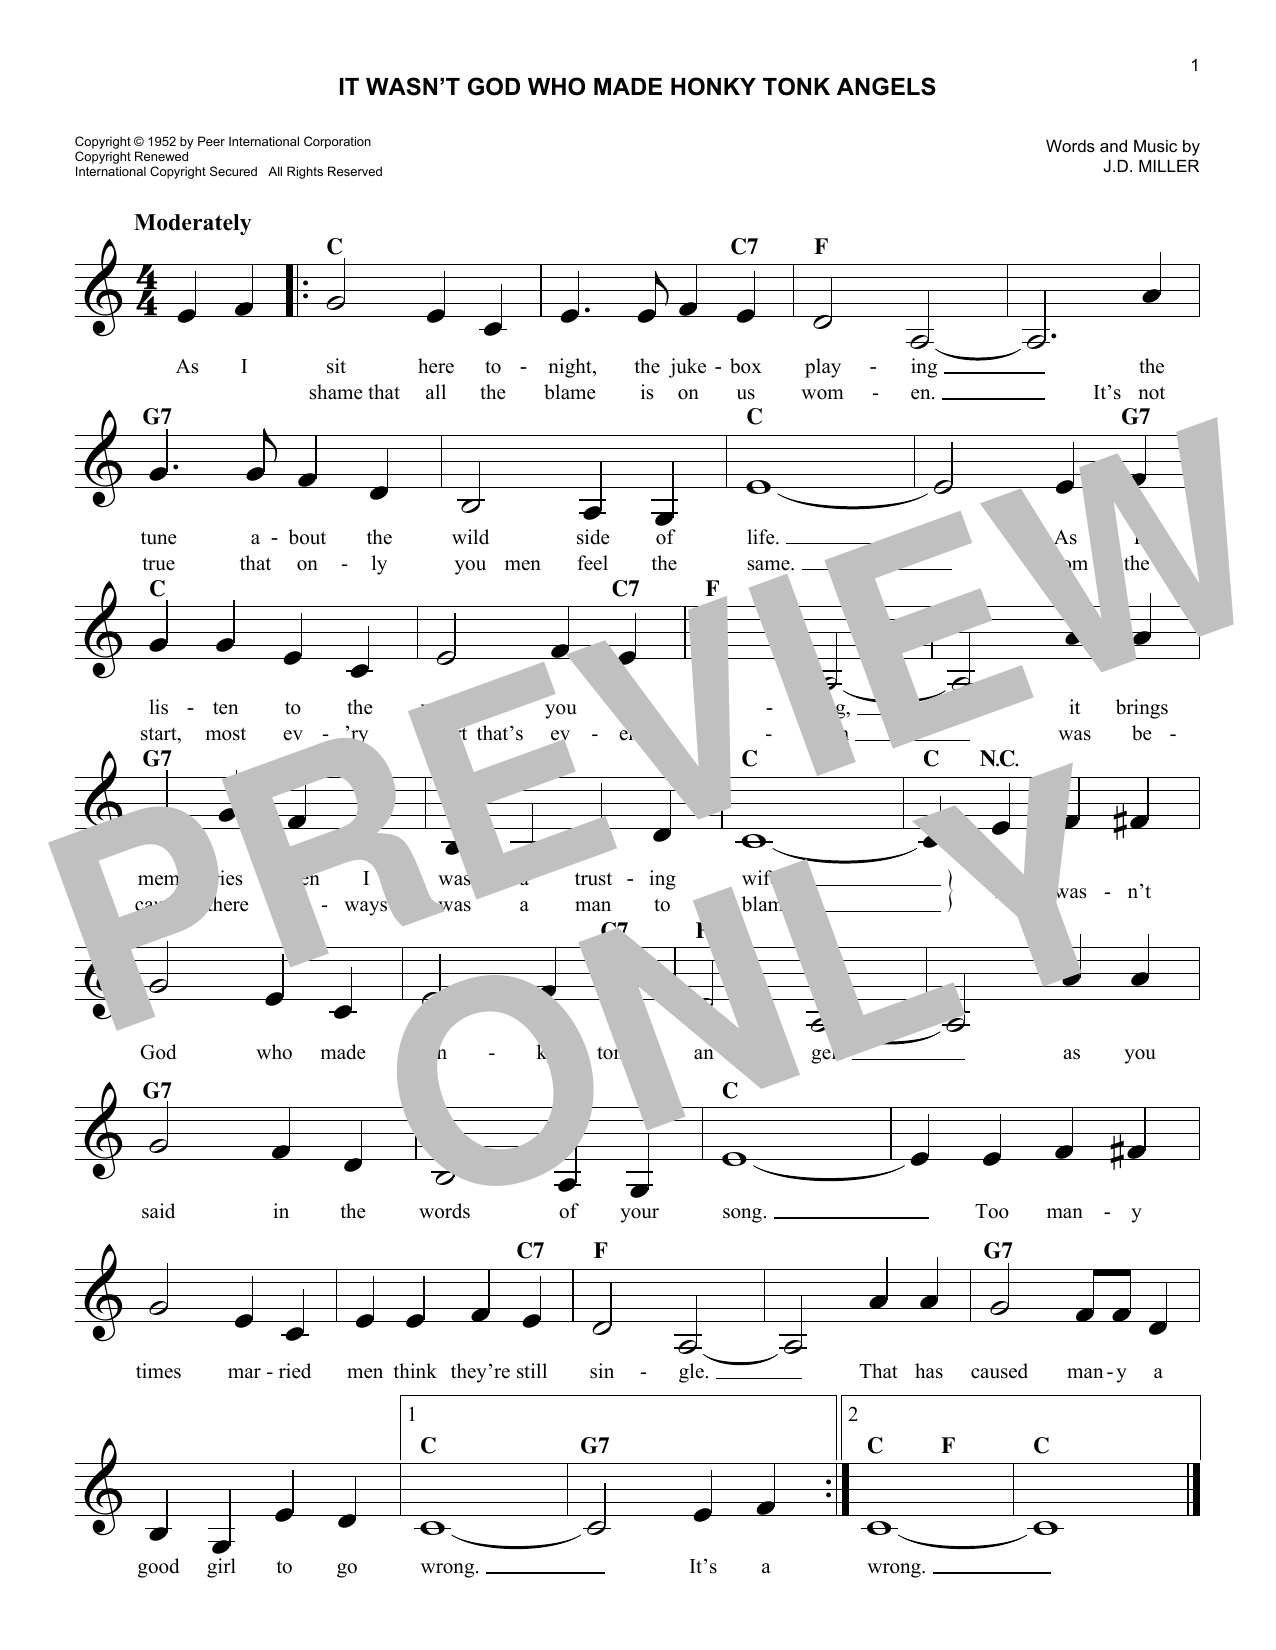 It Wasn't God Who Made Honky Tonk Angels Sheet Music